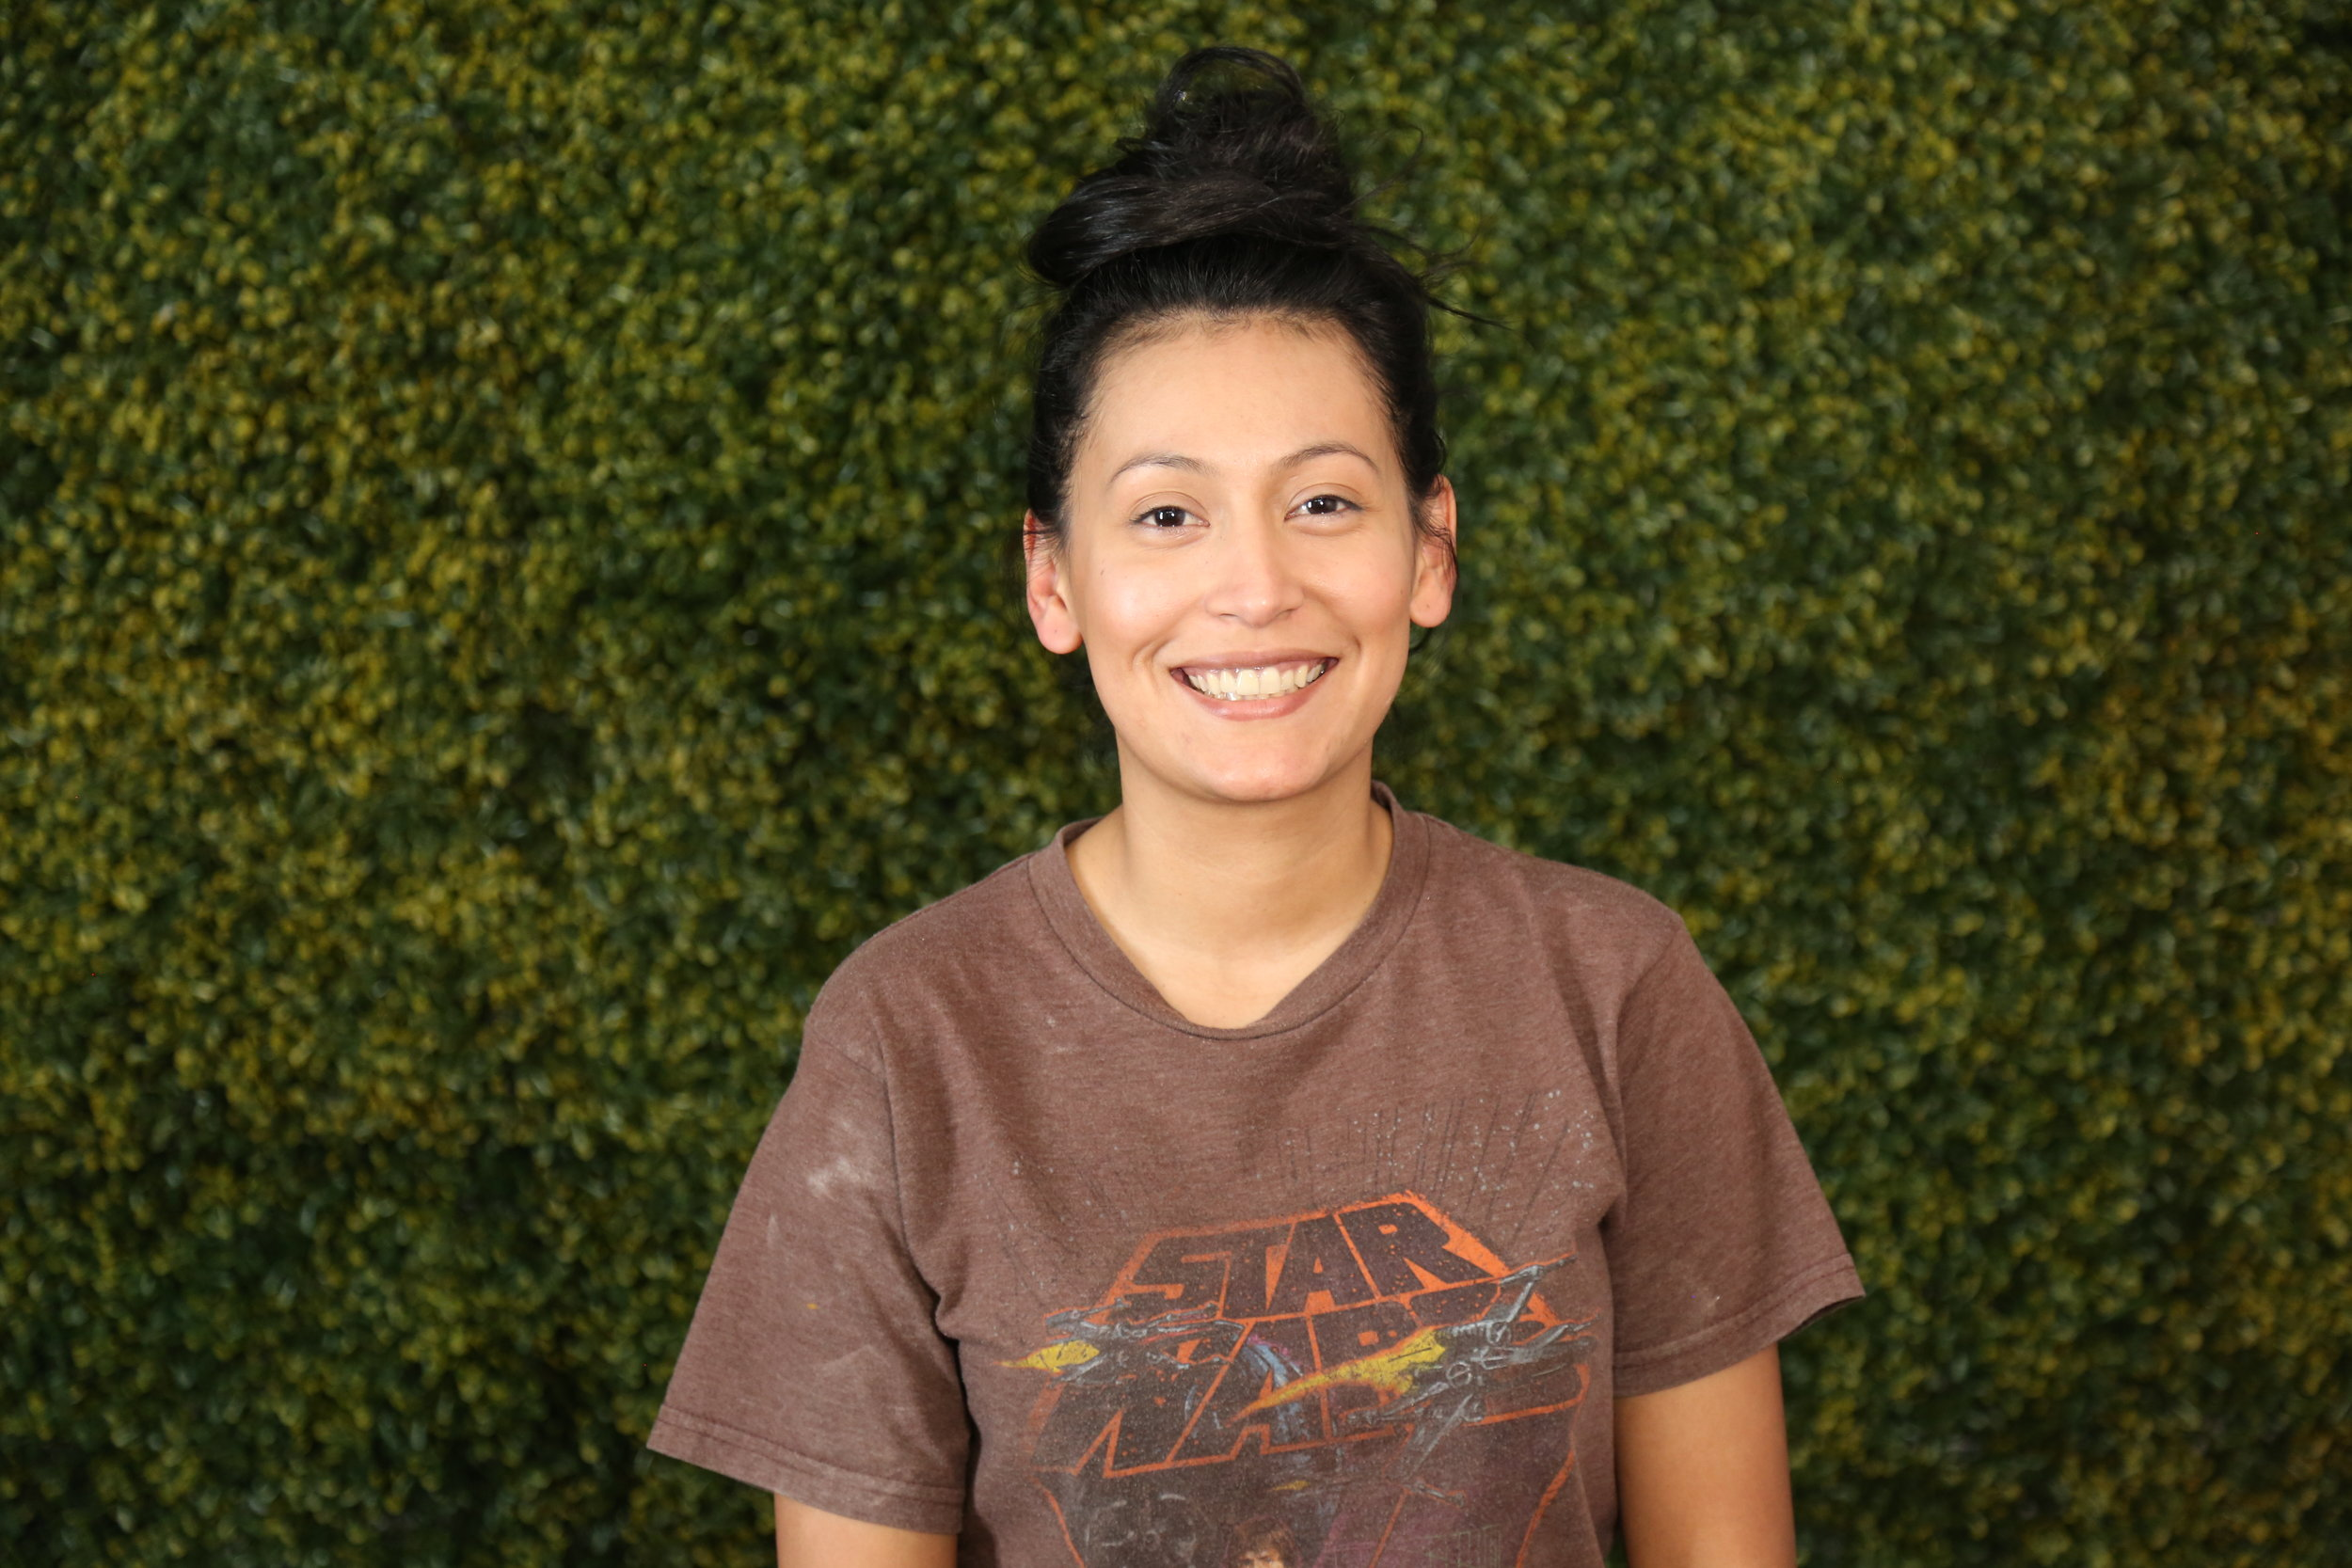 """Betsi Santos   introduction into Art Department came from the all too known challenge of """"I want to be an Artist!… but how can I get paid doing it"""". Her passion for Oil painting has never left, graduating with a BFA from Eastern New Mexico University. Since joining the BLK&Ginger team she has ripped down the wall of knowledge jumping head first into Building, Scenic, Production Design, and Graphic Design… and I must say her entrance to our studio has brought the highest level of quality and detail!"""